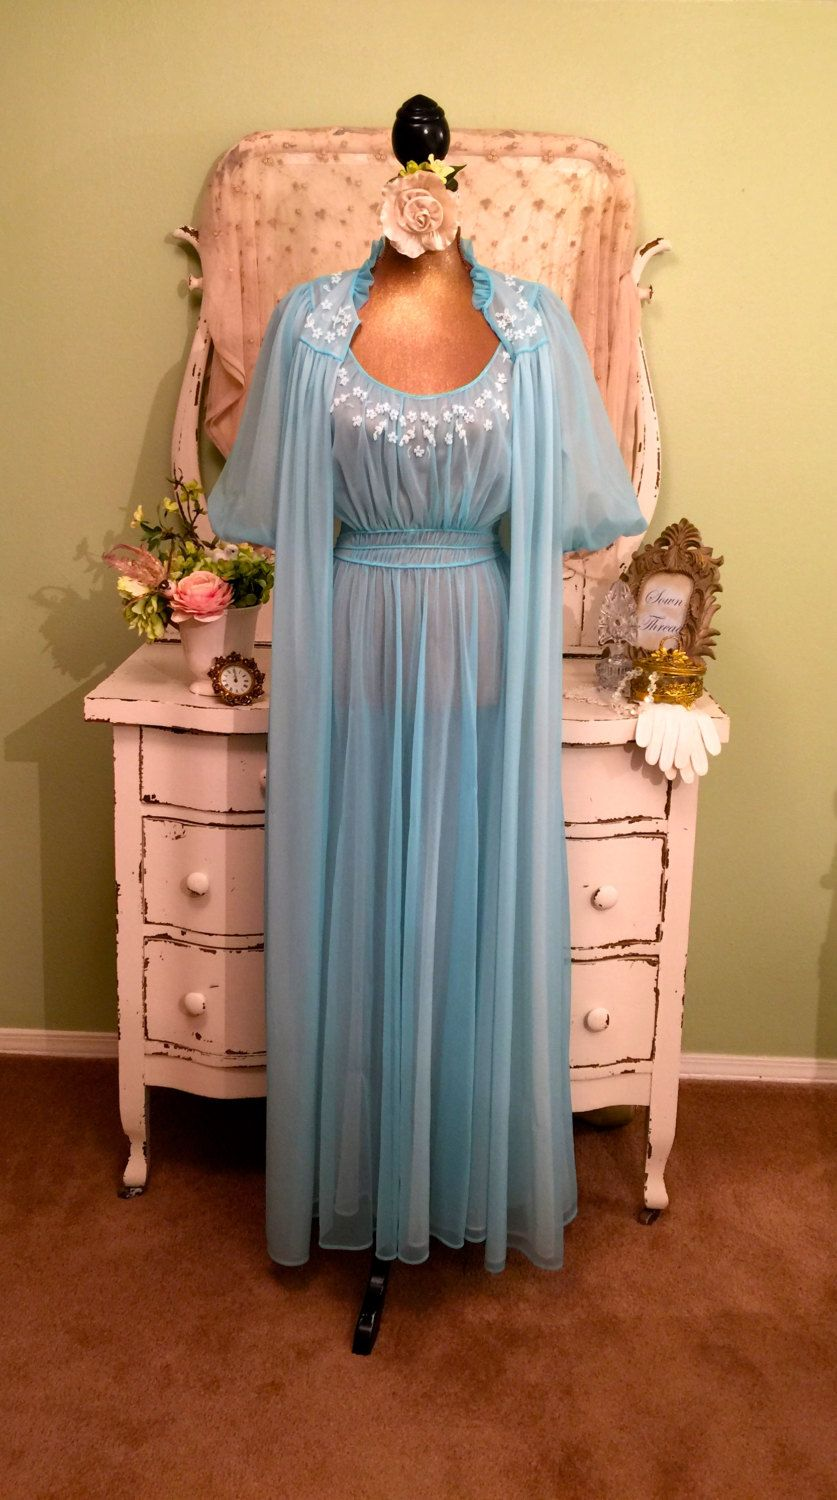 Find great deals on eBay for vintage nightgown and robe sets. Shop with confidence.